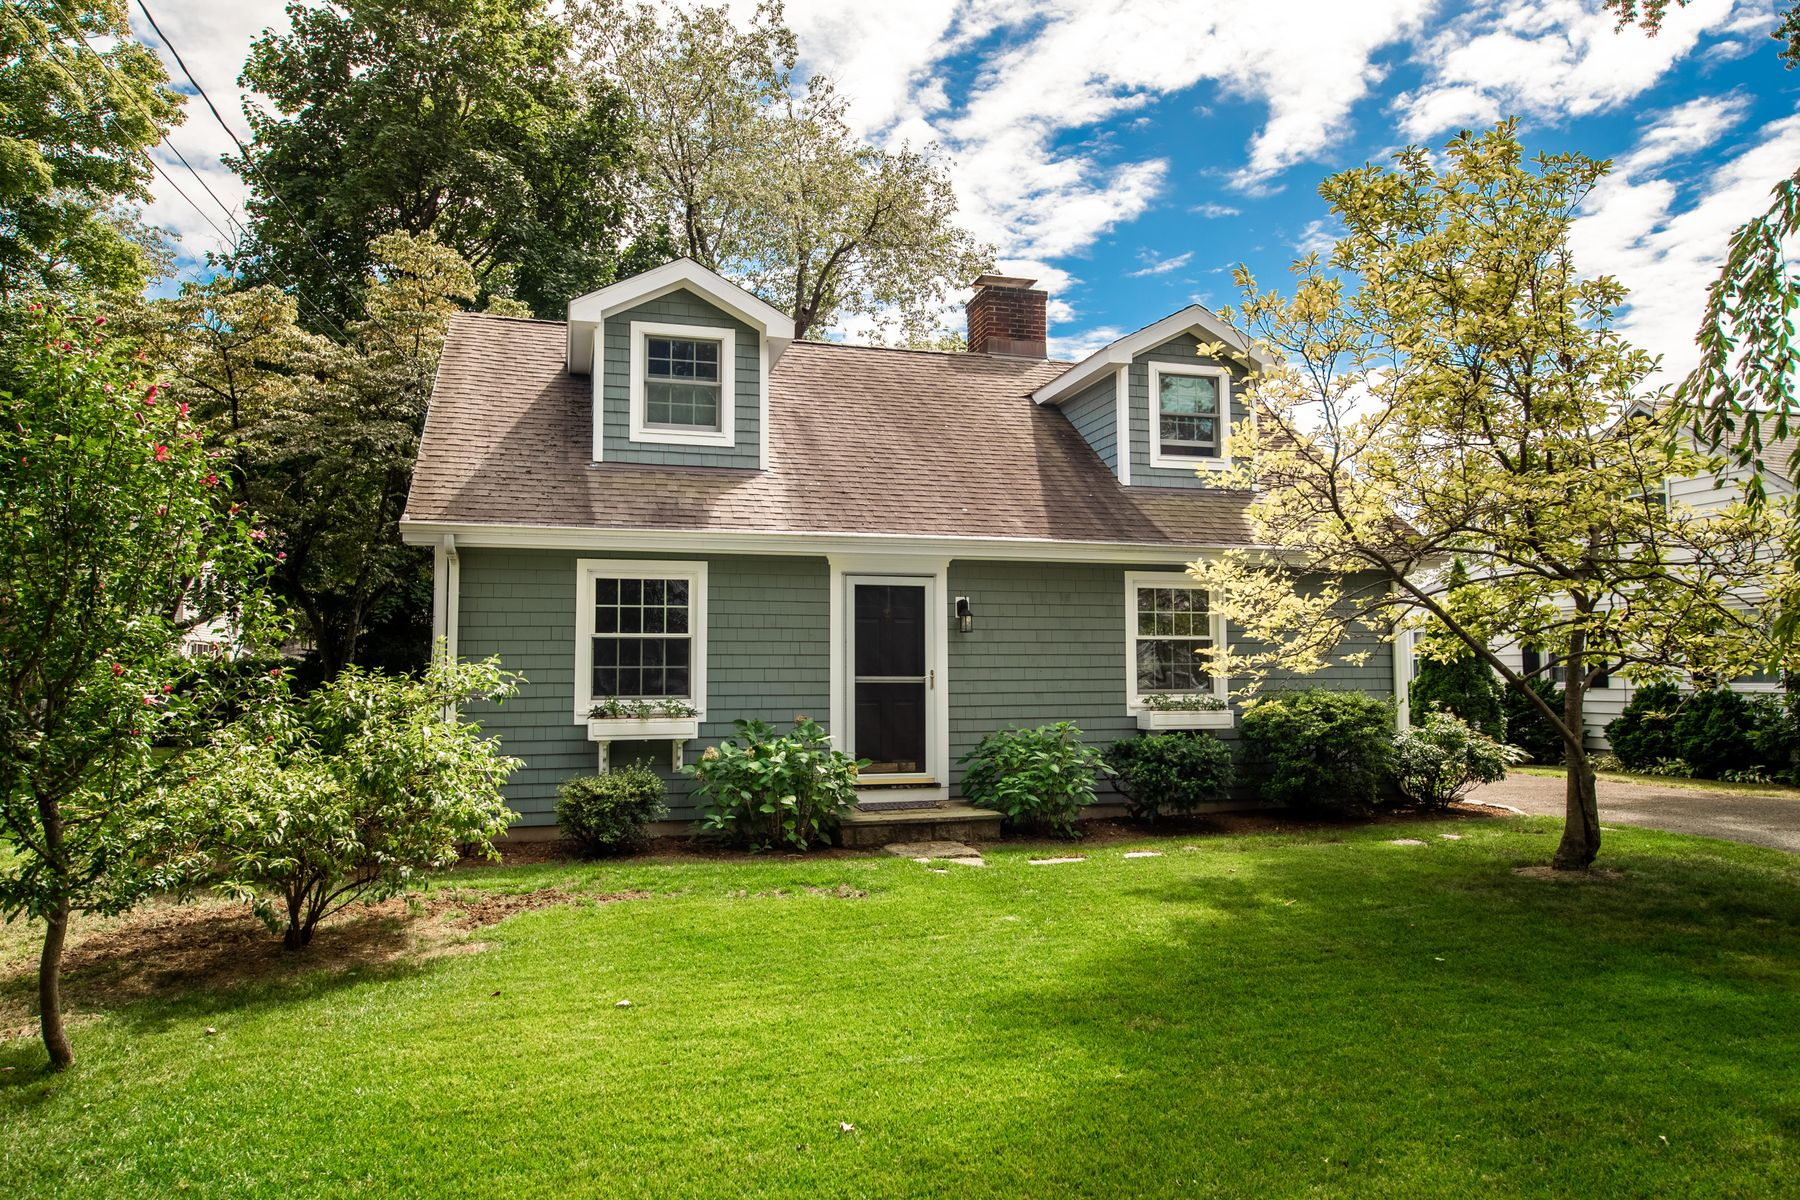 Single Family Homes for Active at Cos Cob Gem 2 Mulberry Lane Cos Cob, Connecticut 06807 United States